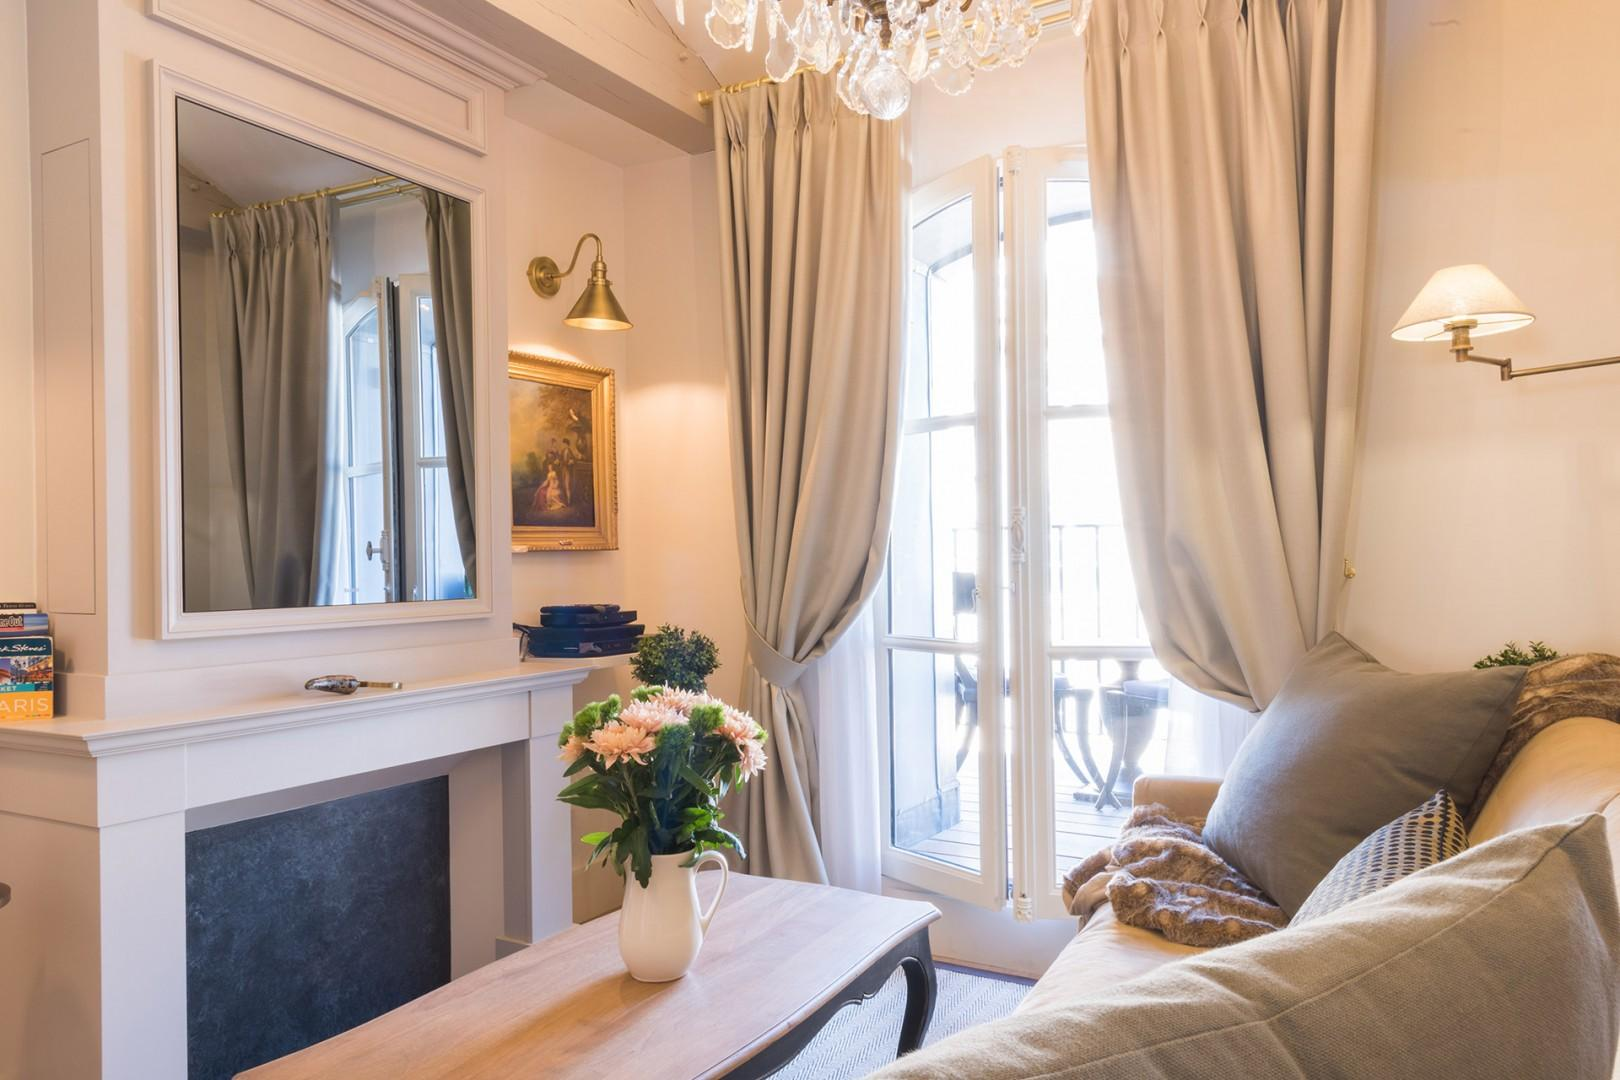 The large French window lets in lots of natural light.